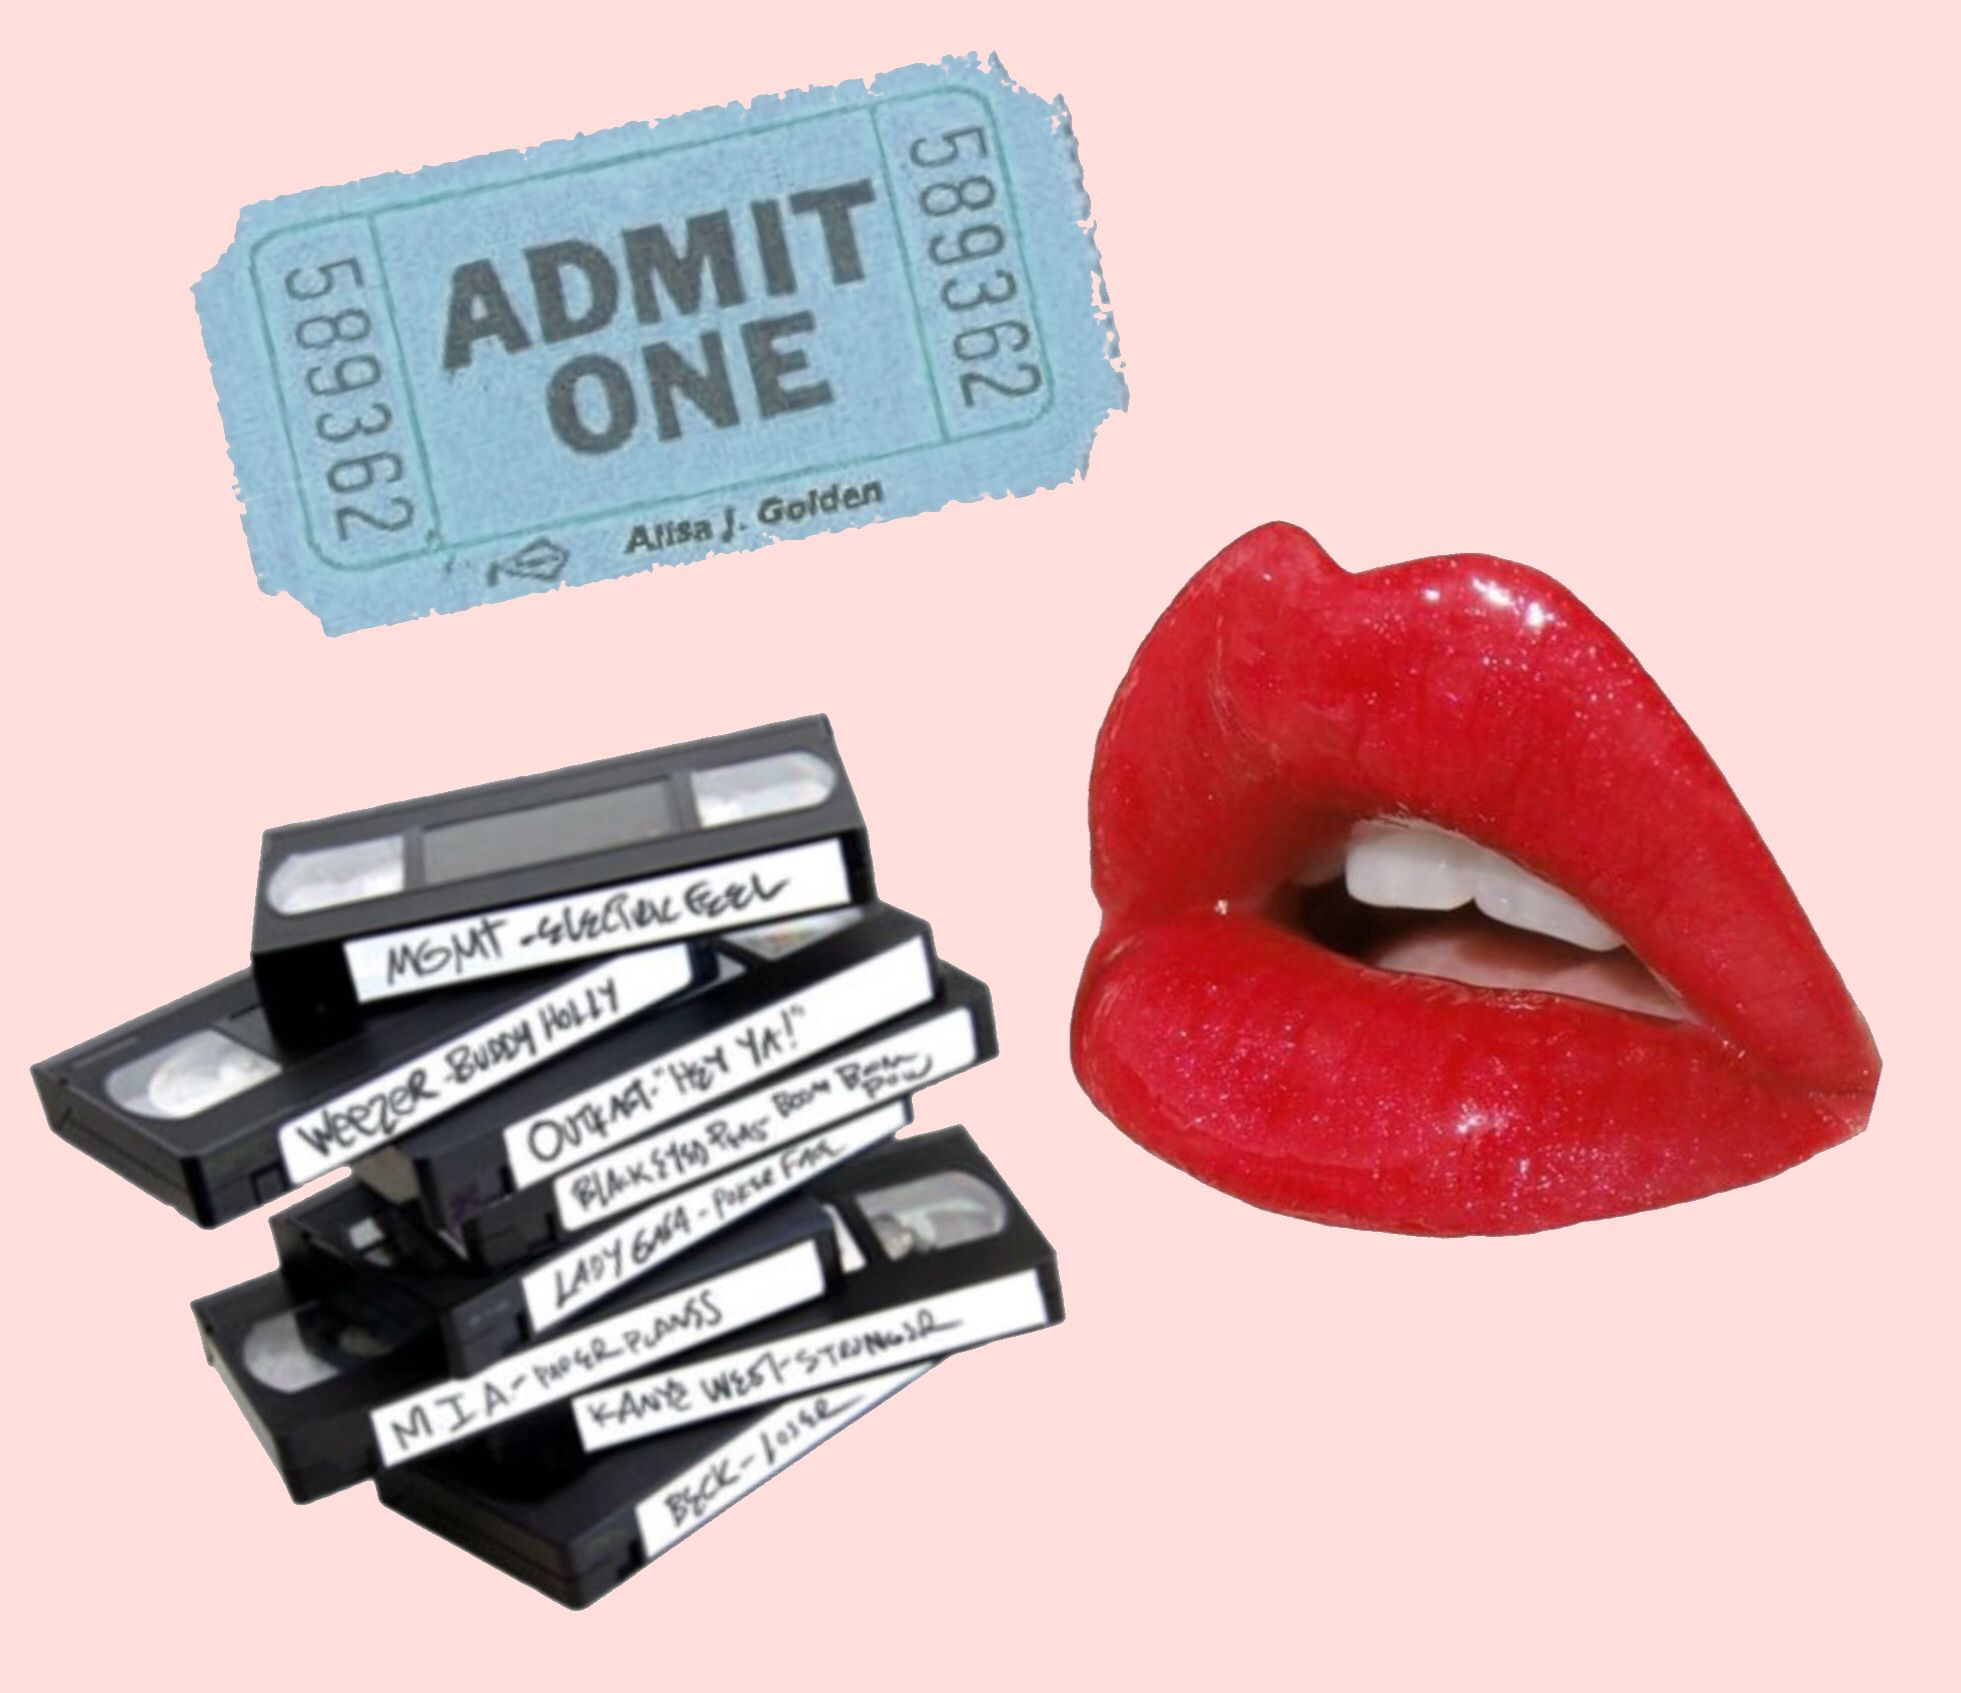 Admit One Ticket Blue Red Lips Vhs Tape Stack Pink Background